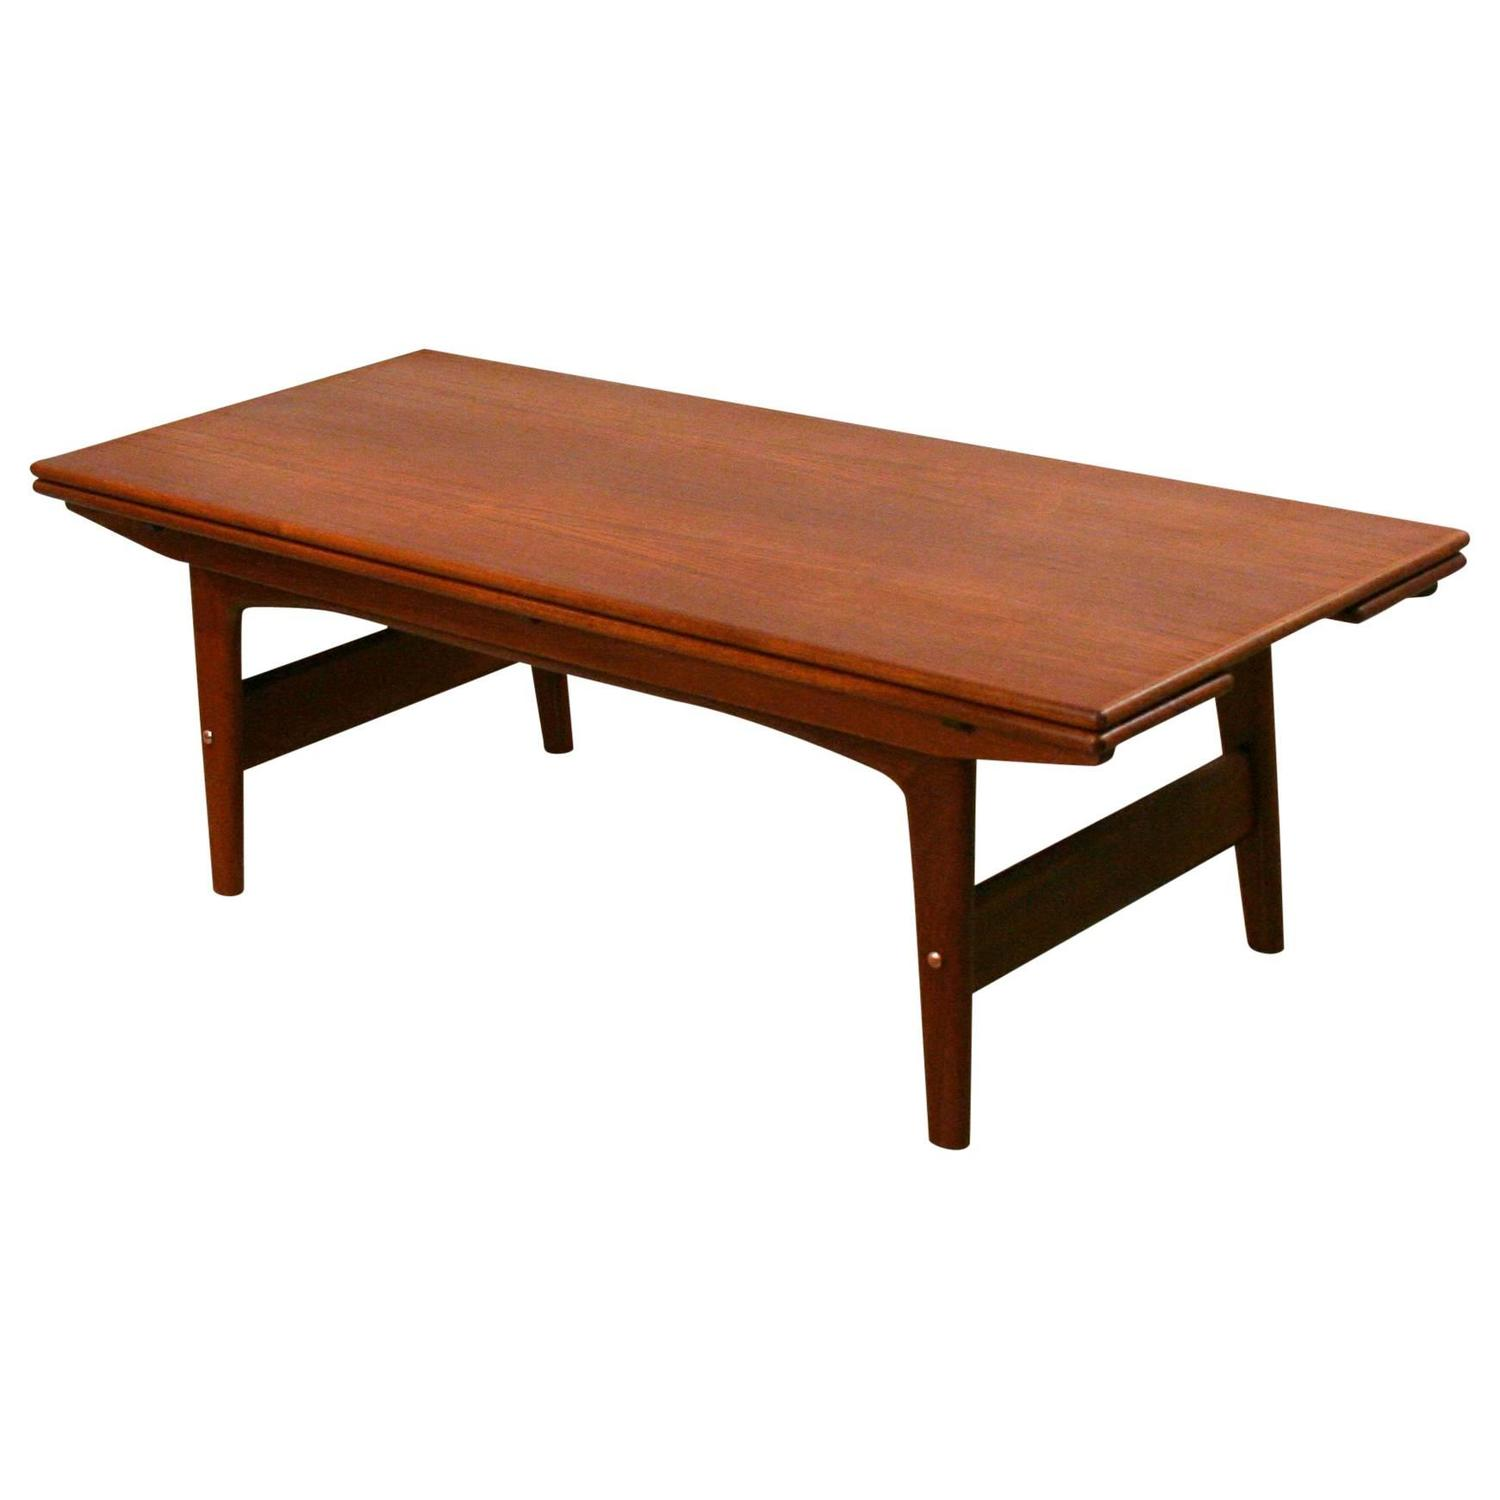 Old Teak Coffee Table: Vintage Danish Teak Elevator Coffee Table At 1stdibs